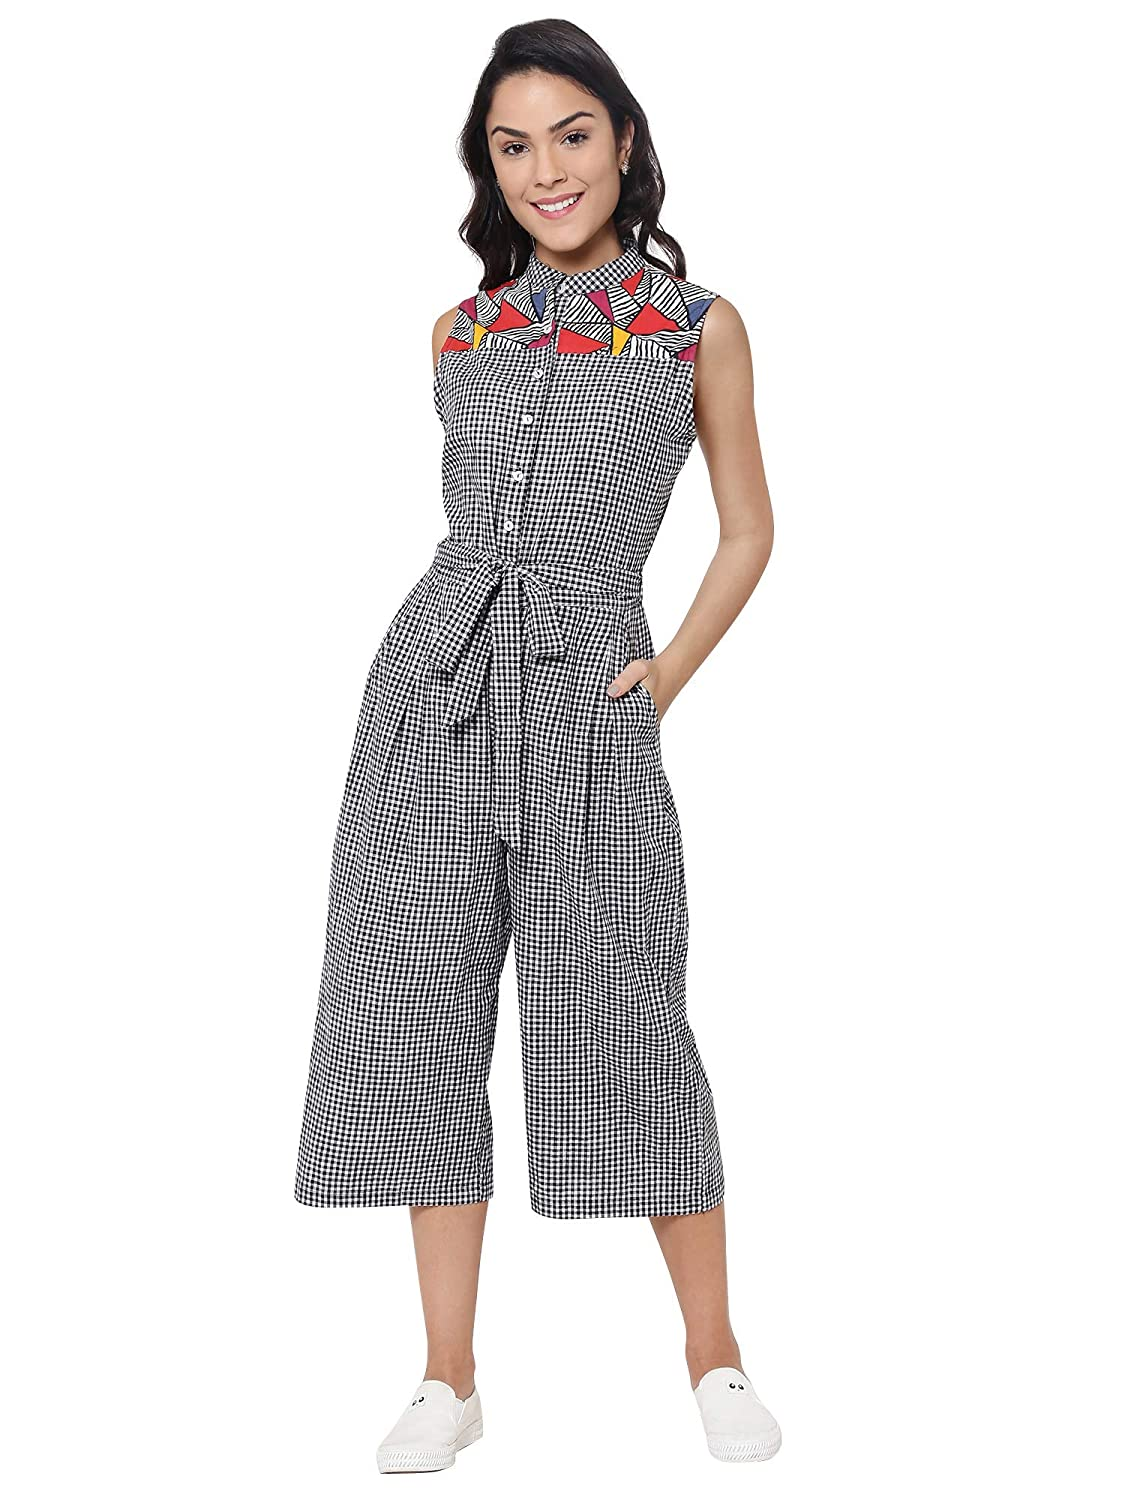 official supplier top design watch Martini Women Black & White Gingham Check Cotton Jumpsuit